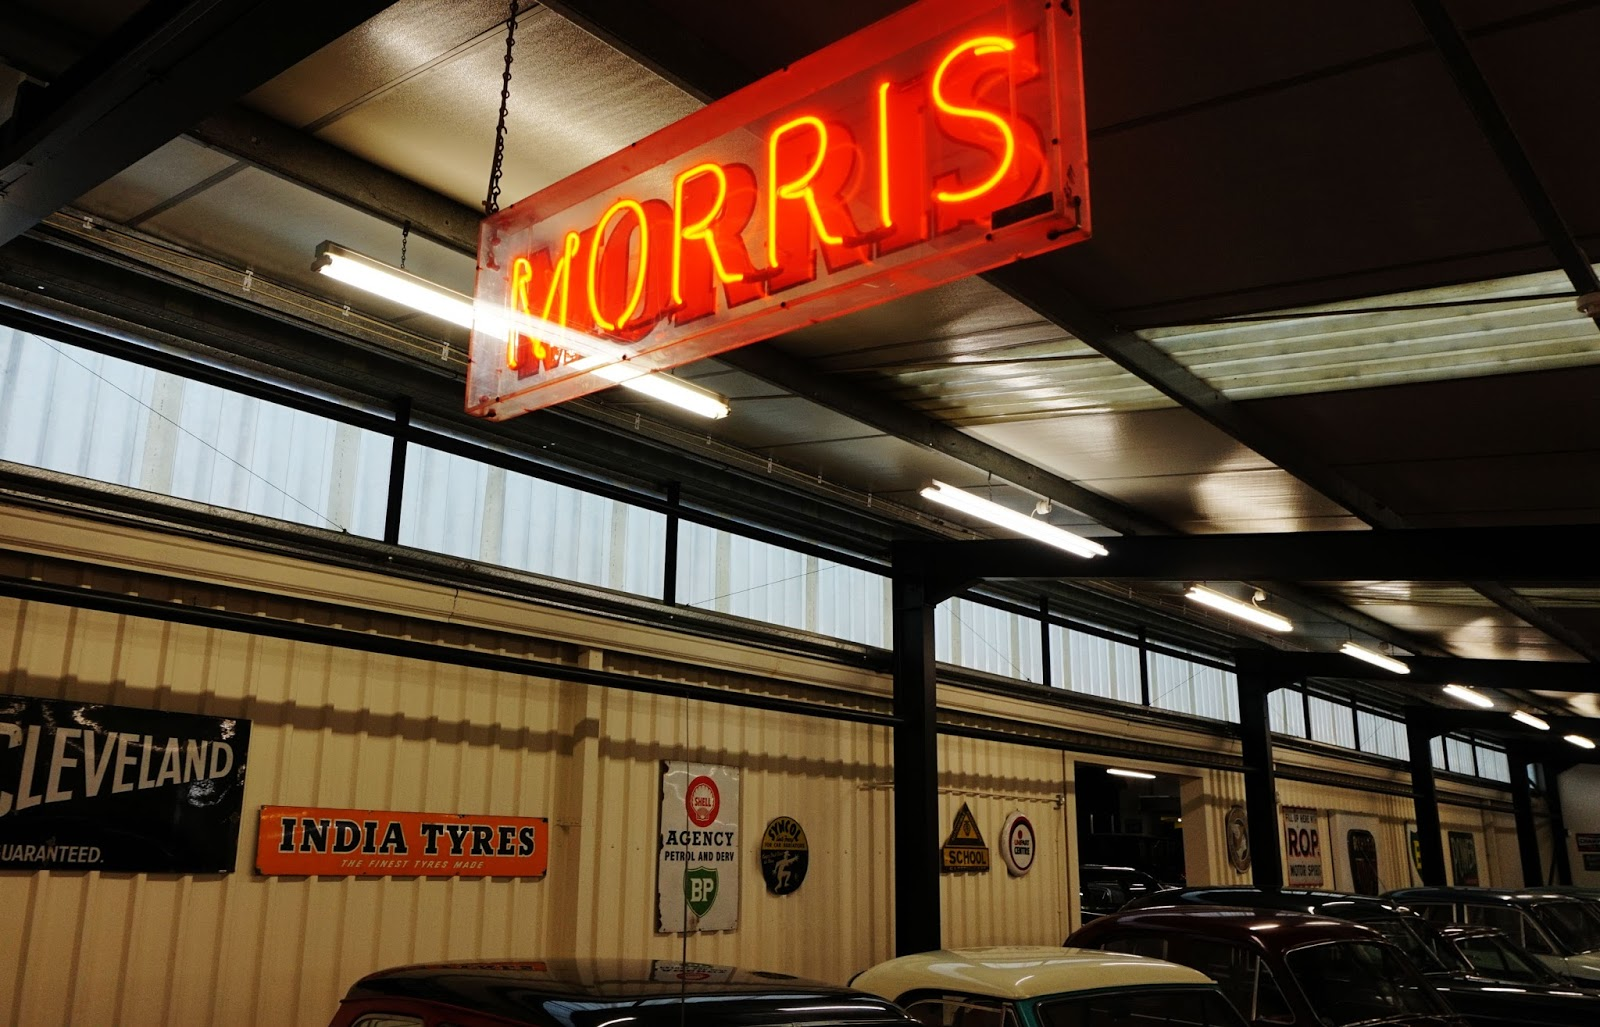 morris minor classic car lights sign haynes motor museum